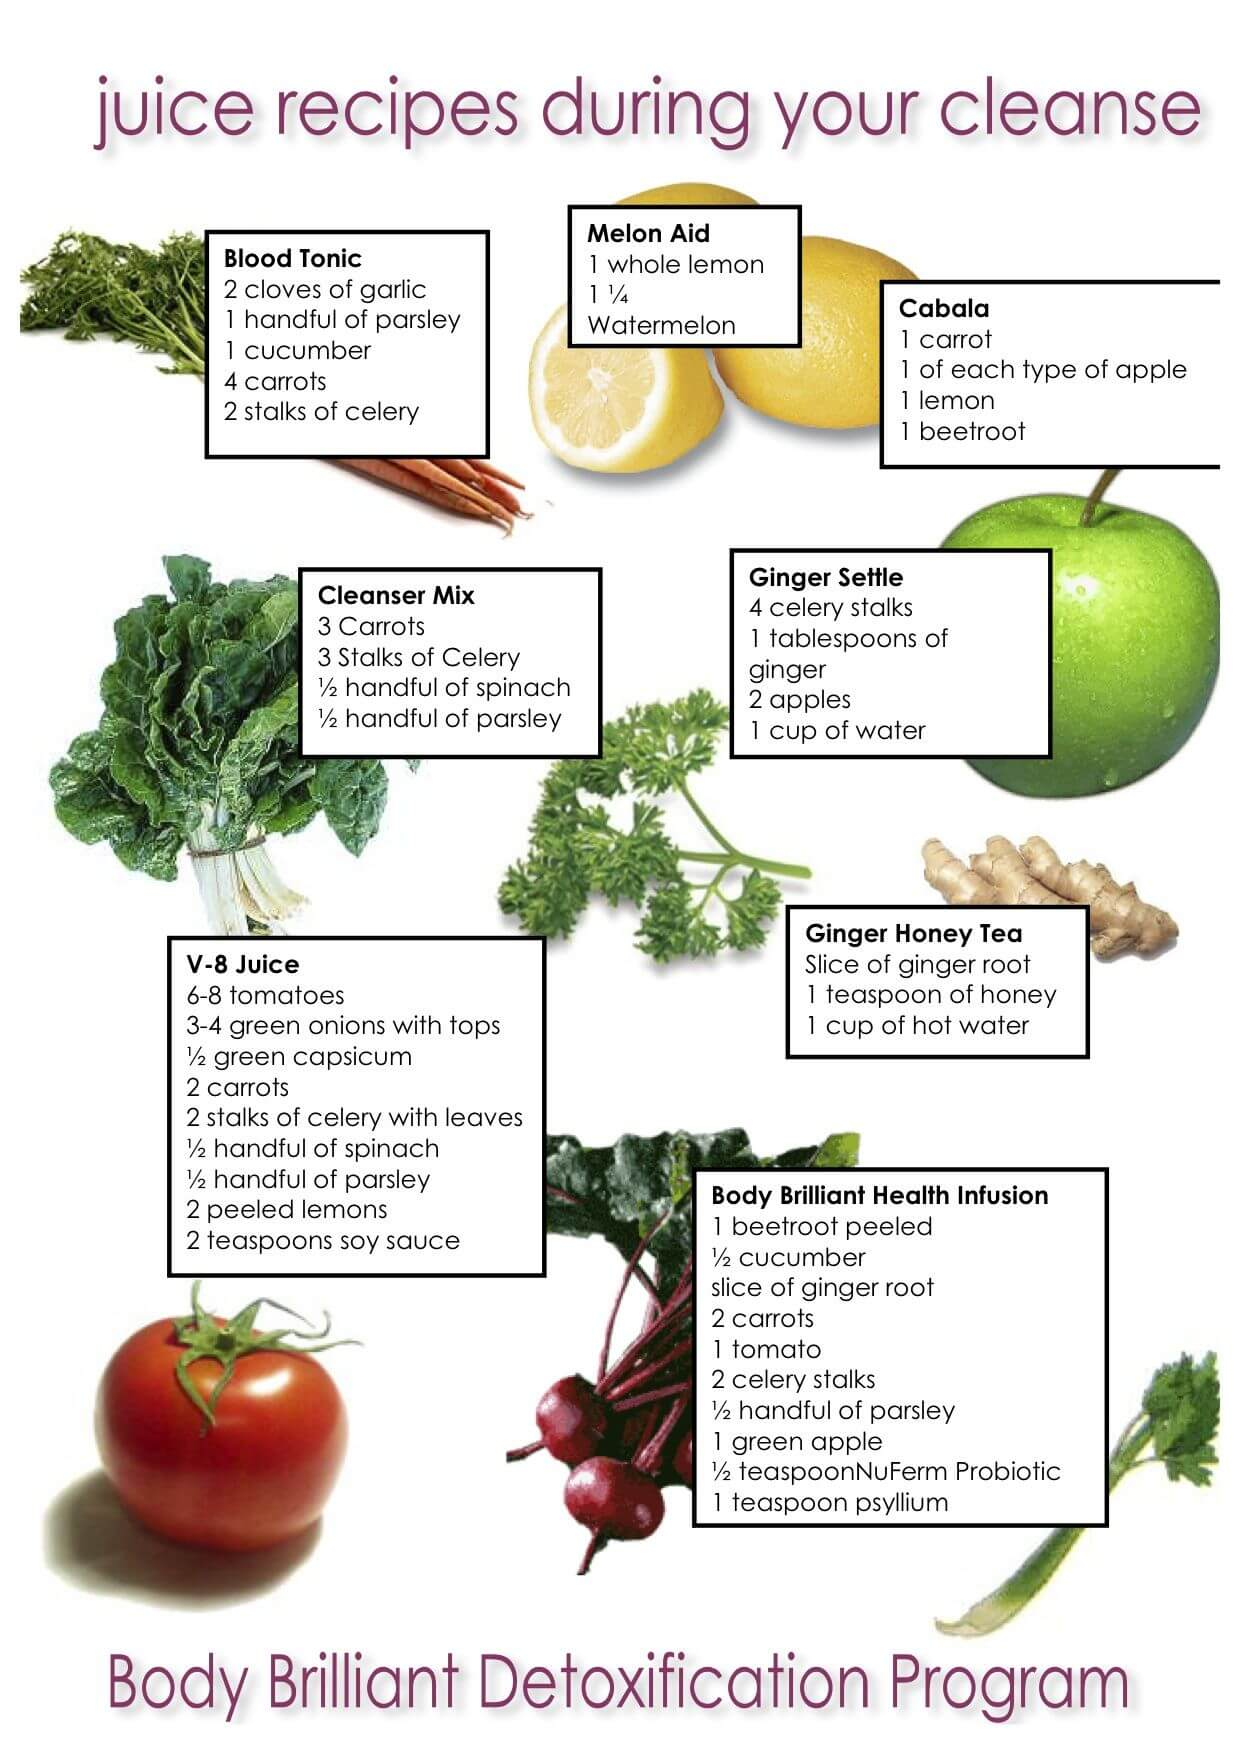 Juicing Recipe during cleanse